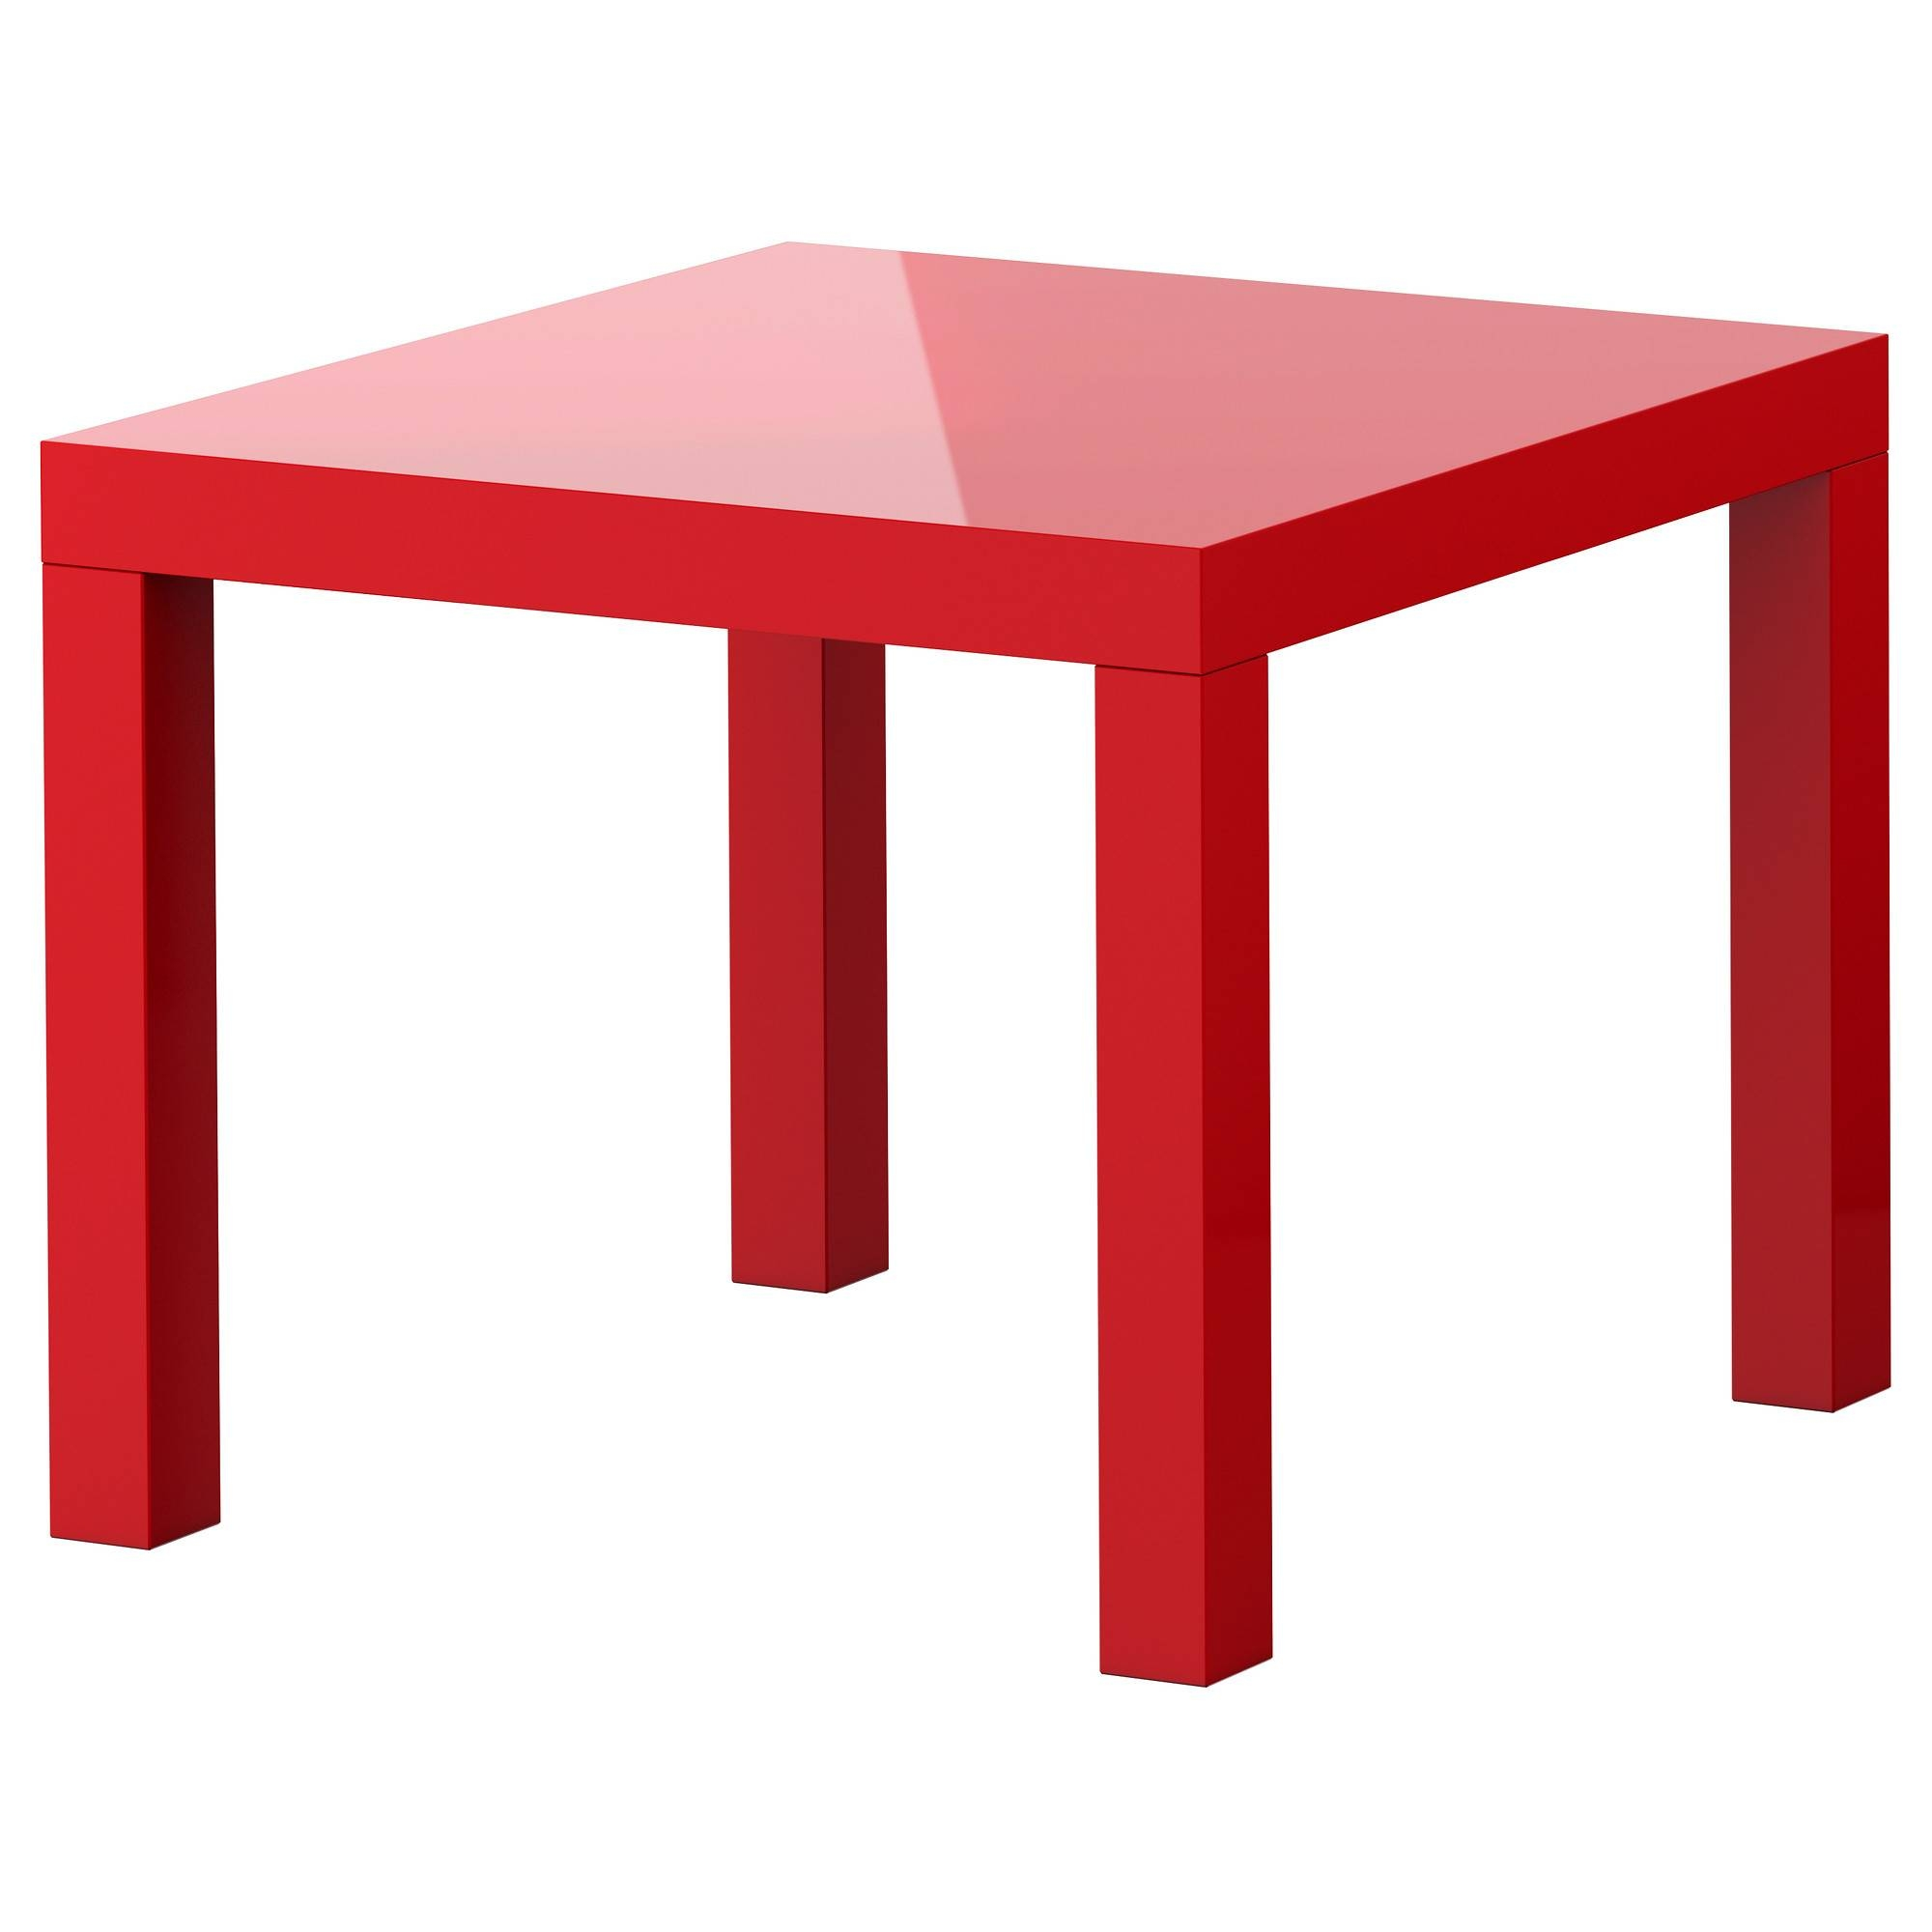 "Lack Side Table - High Gloss Red, 21 5/8X21 5/8 "" - Ikea with Red Gloss Coffee Tables (Image 13 of 30)"